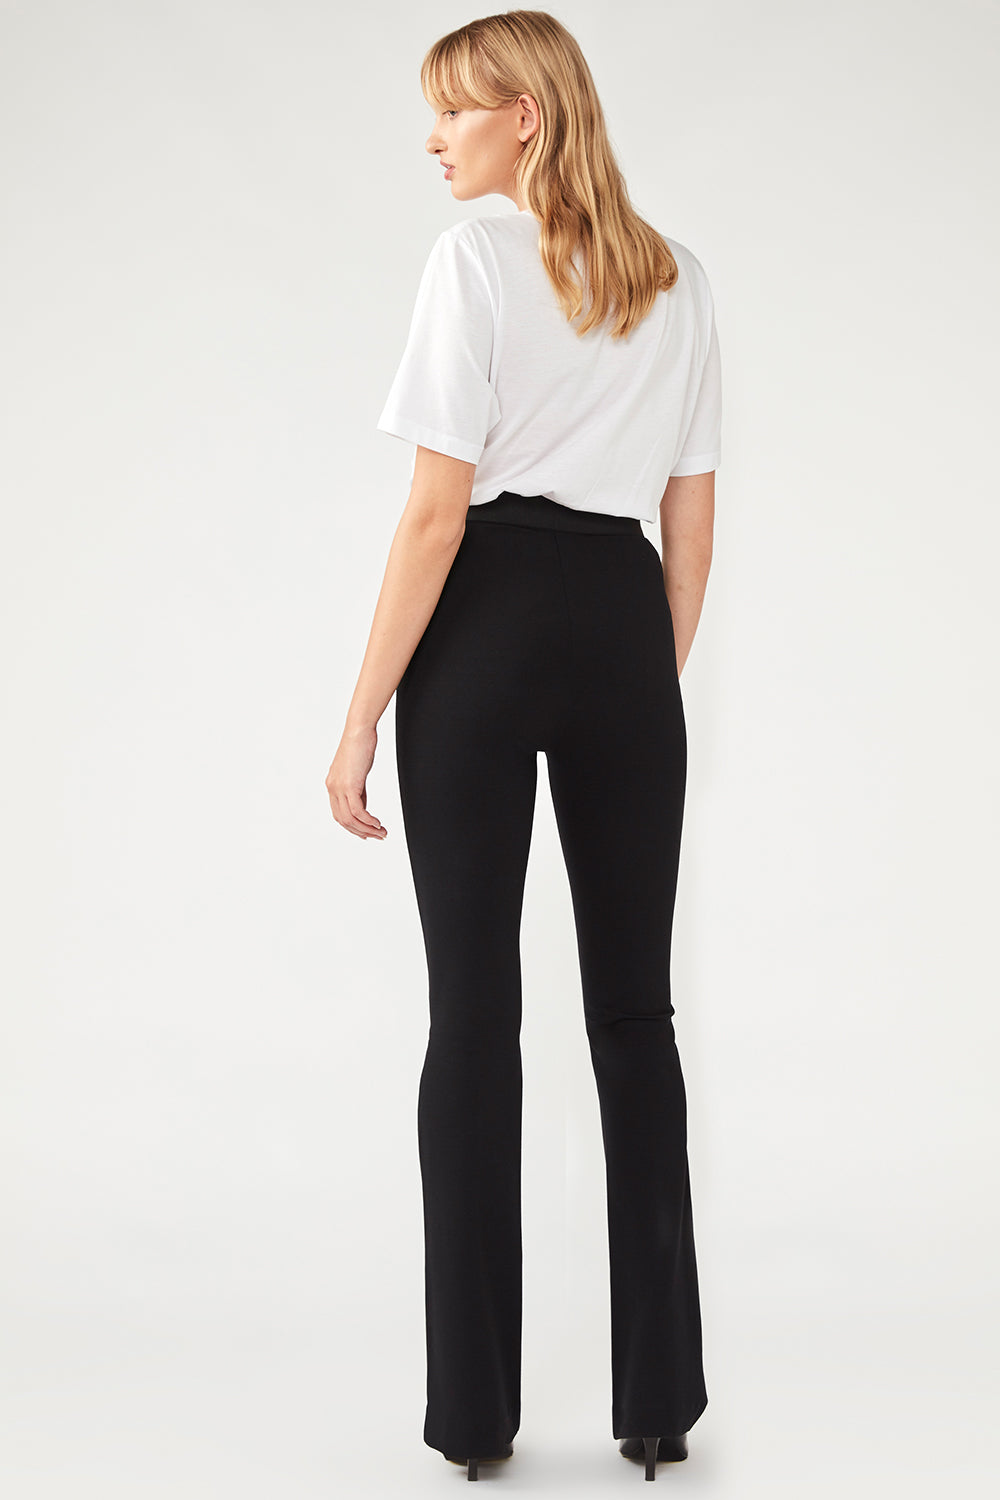 Camilla And Marc / Lennox Pant / Black